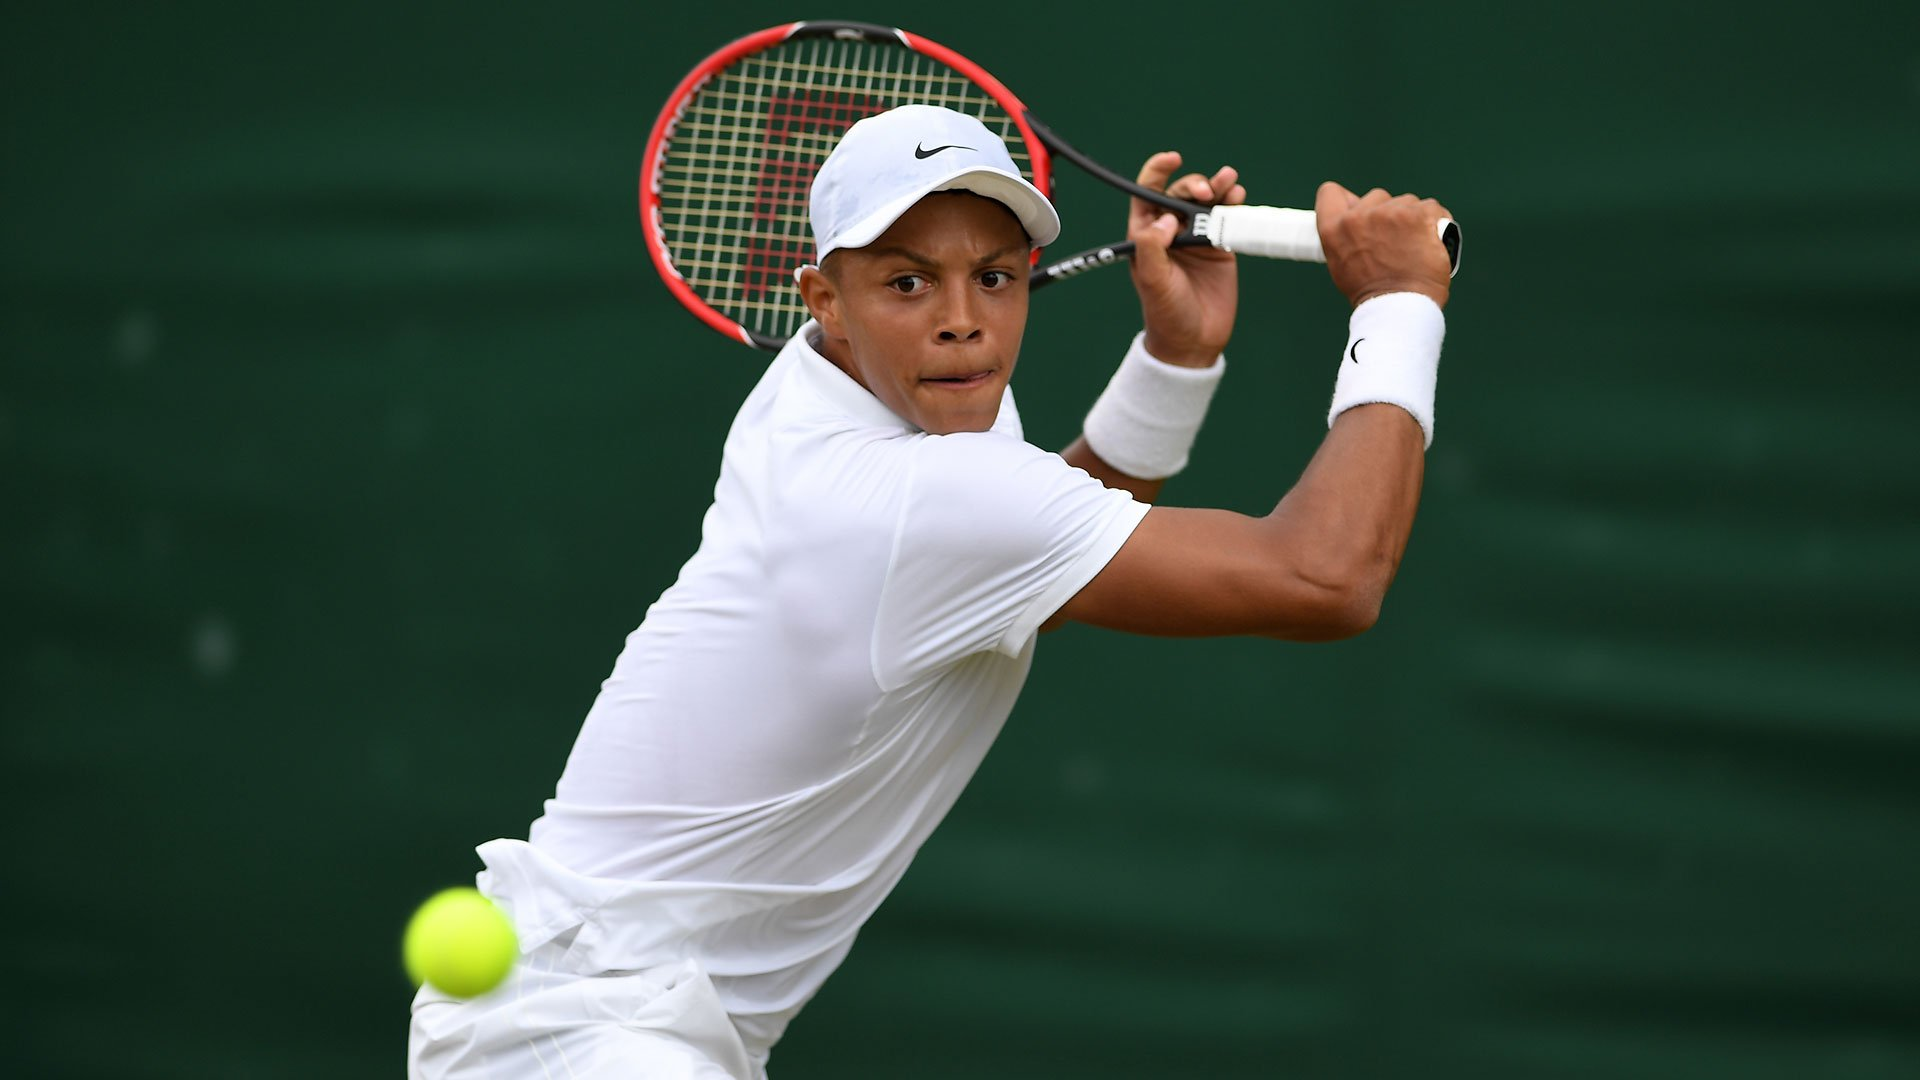 British teen @Jay27798 is one win away from qualifying for the @Wimbledon main draw. Read: https://t.co/HOvVayv2t0 https://t.co/TTrmzANmy3